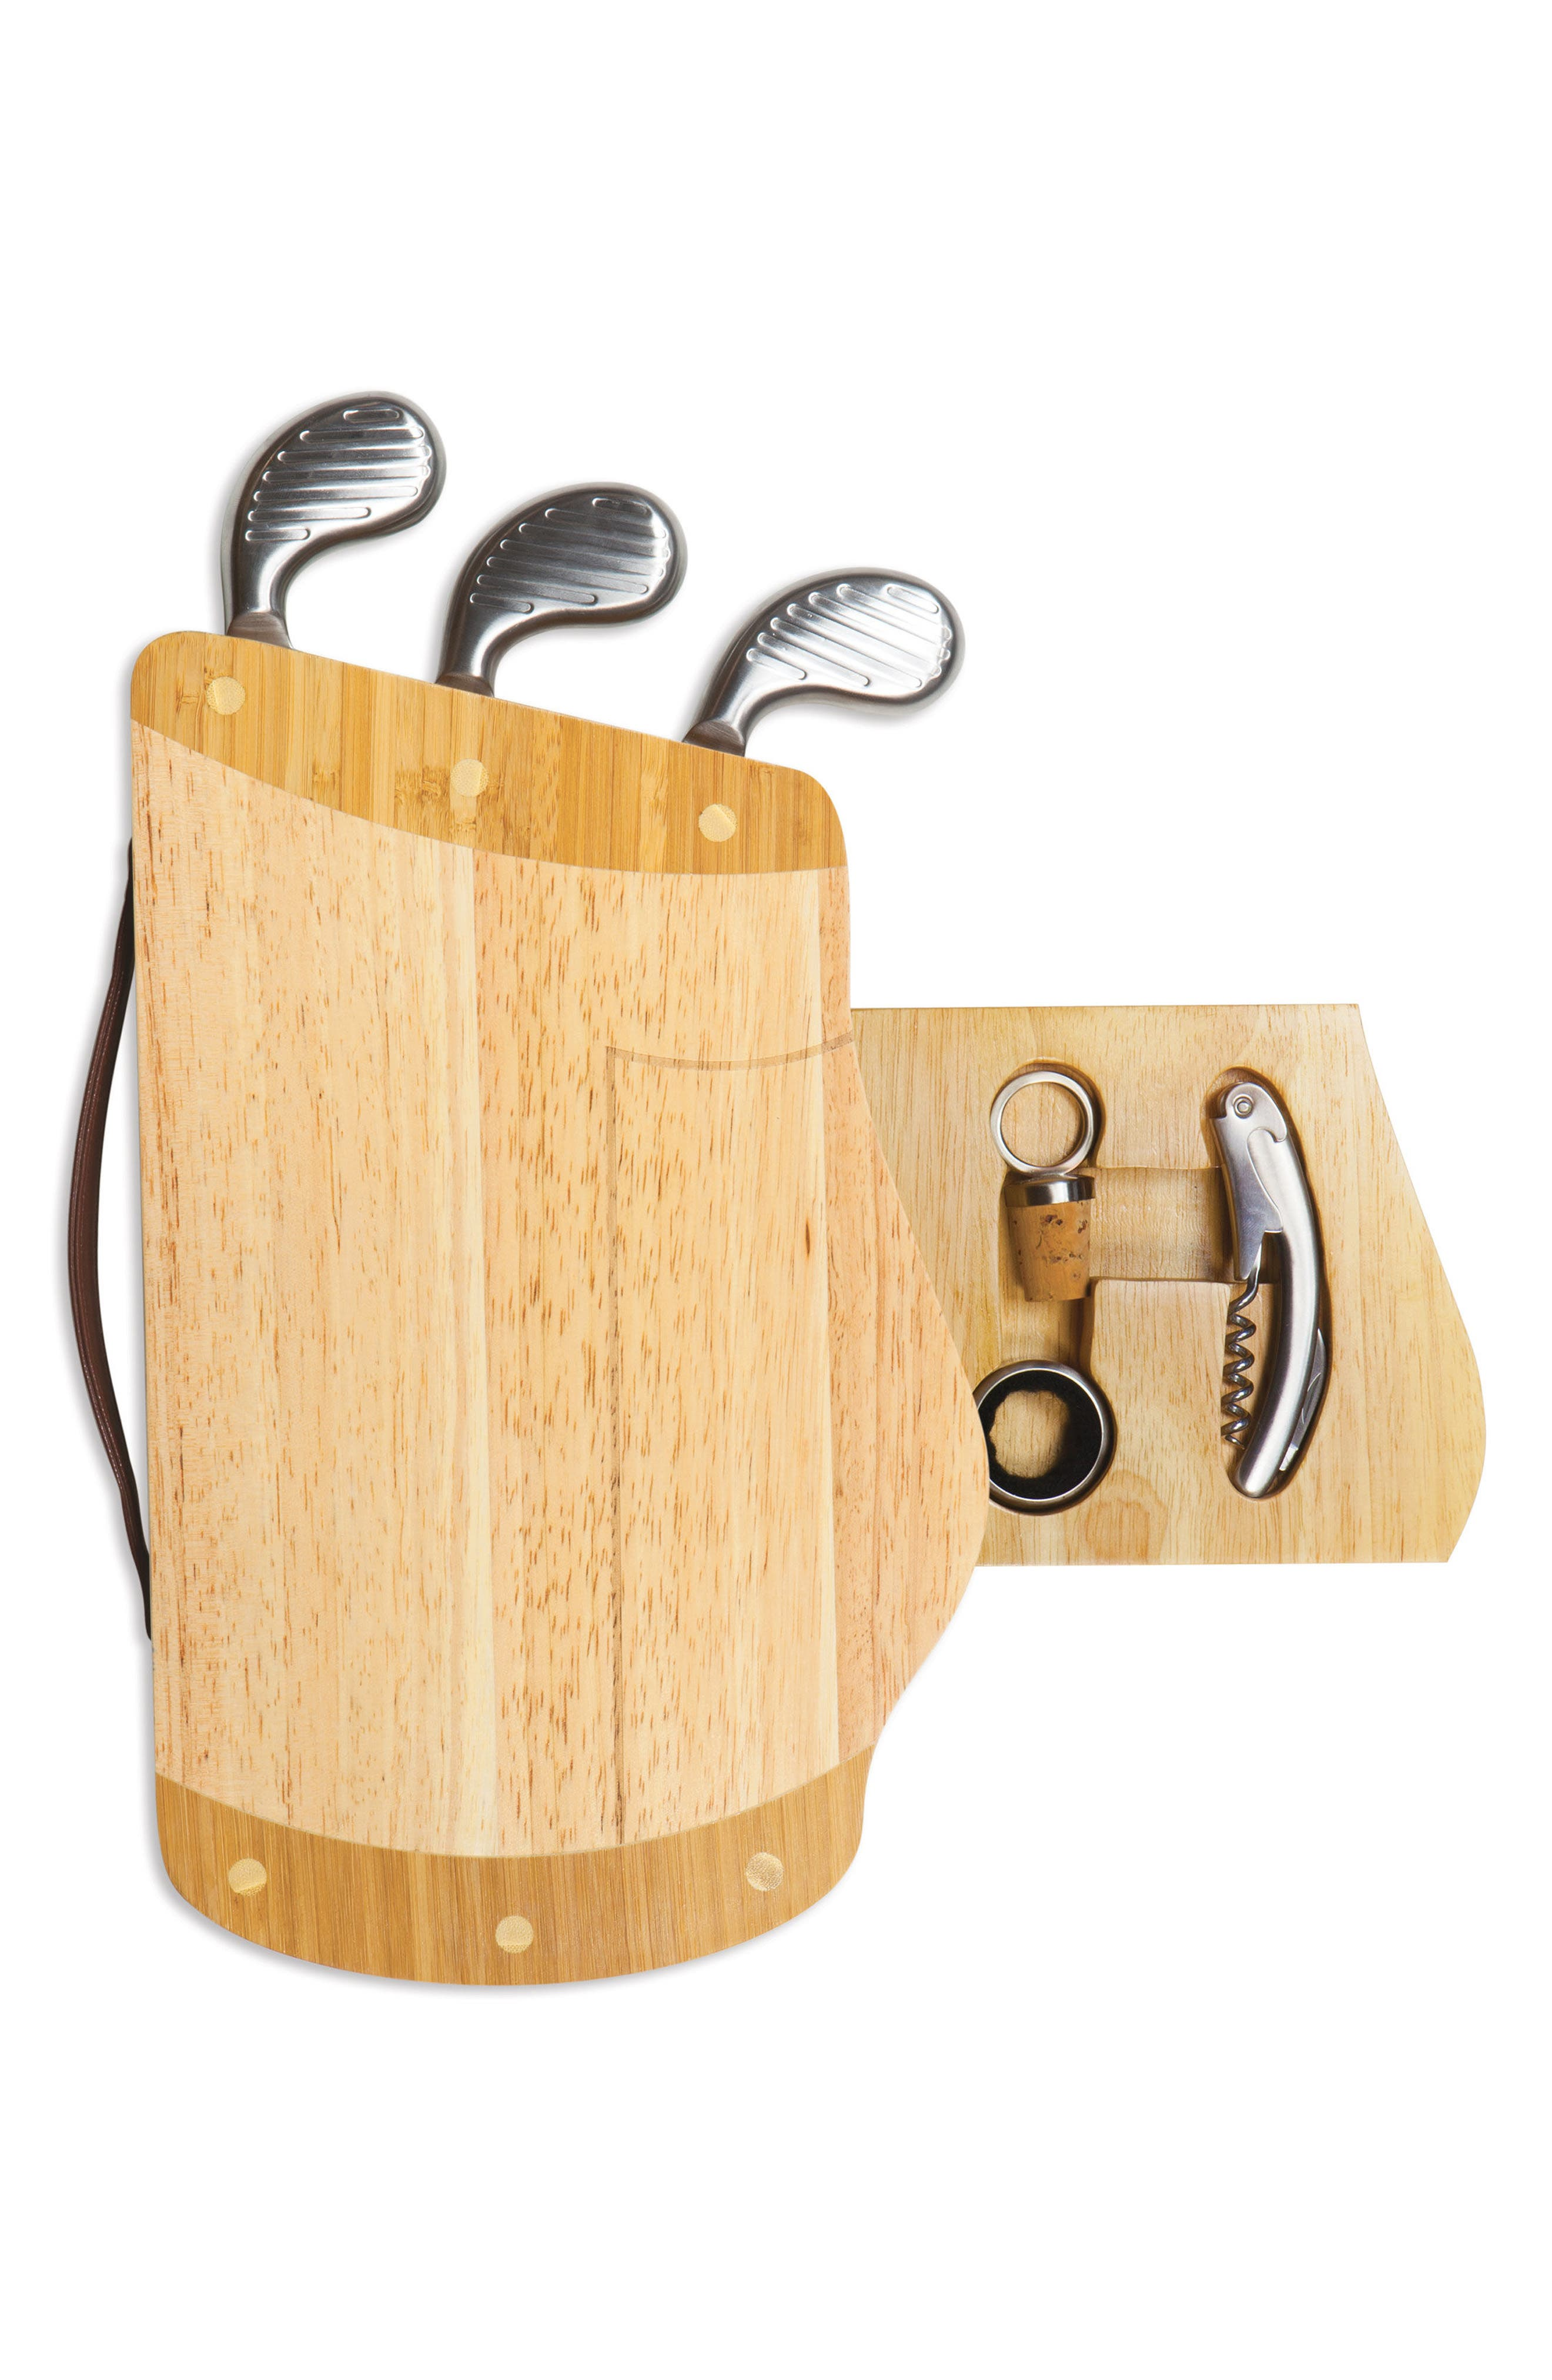 Caddy Cheese Board & Tools Set,                             Alternate thumbnail 8, color,                             Brown